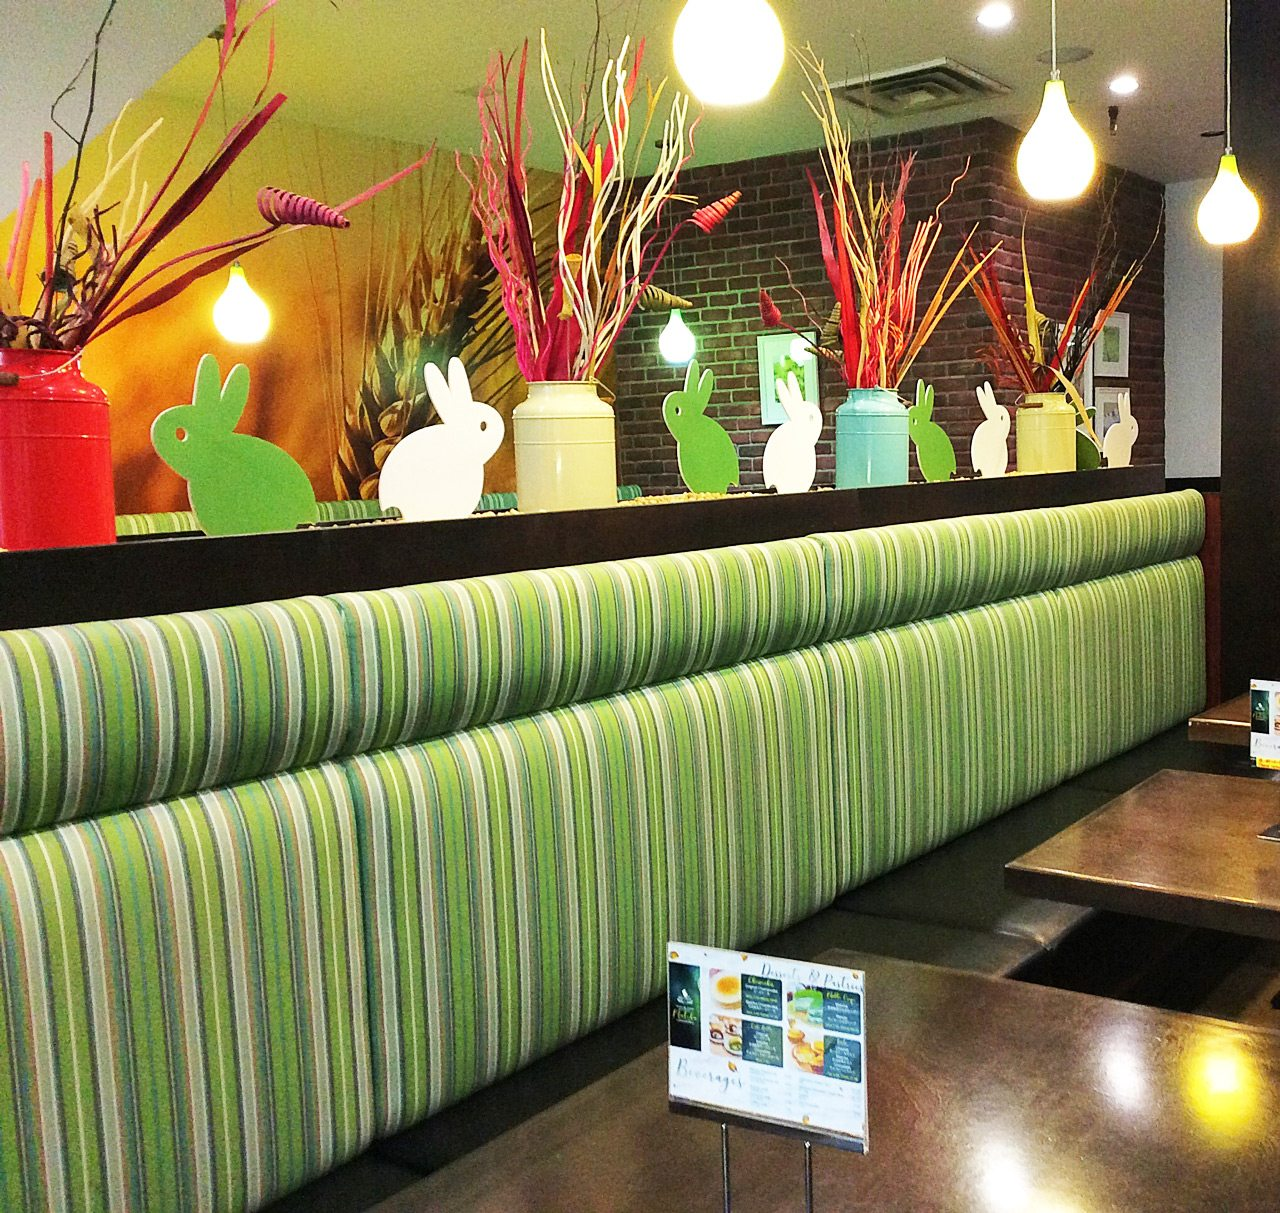 The shades of green remind guests that matcha tea is the key ingredient in many of the drinks and desserts